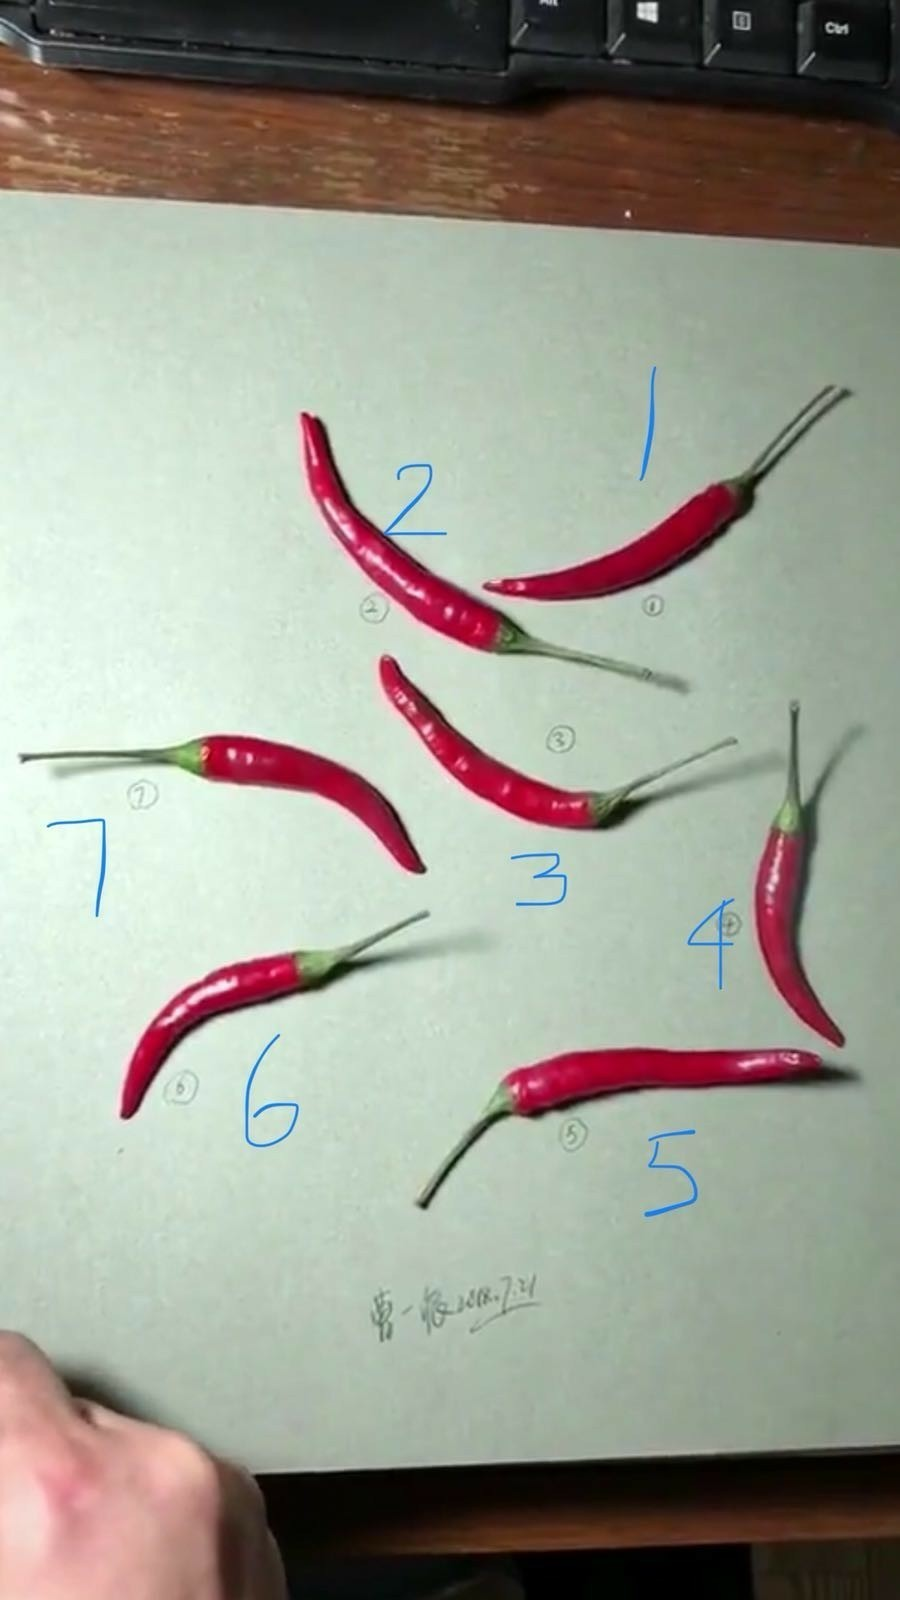 one chilli is a drawing the rest are real which one is a drawing